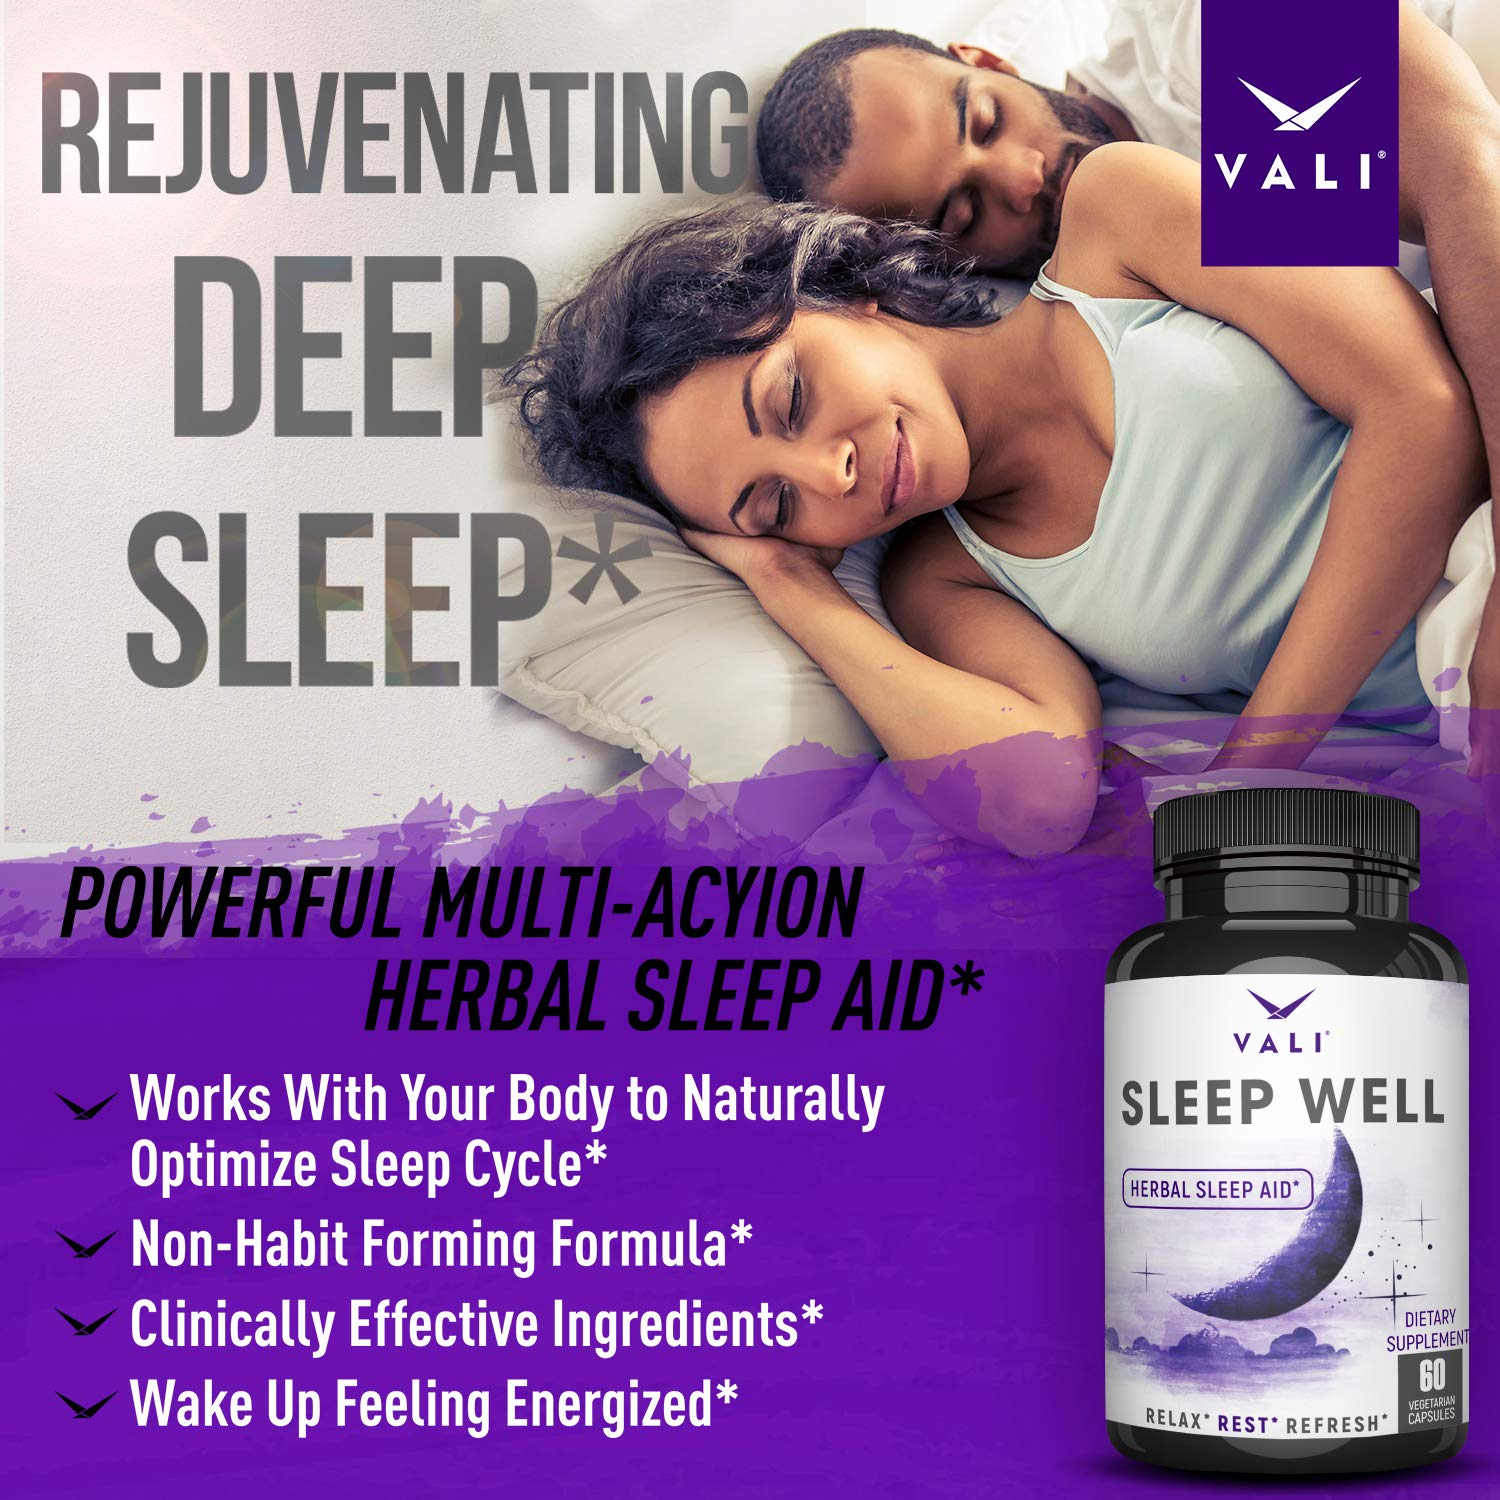 Sleep Well Natural Sleep Aid Supplement - Vegan Non Habit Forming Herbal Sleeping Pills for Adults. Calm, Relax Fast, Support Rest & Wake Refreshed. Melatonin, Valerian, Chamomile - 60 Veggie Capsules